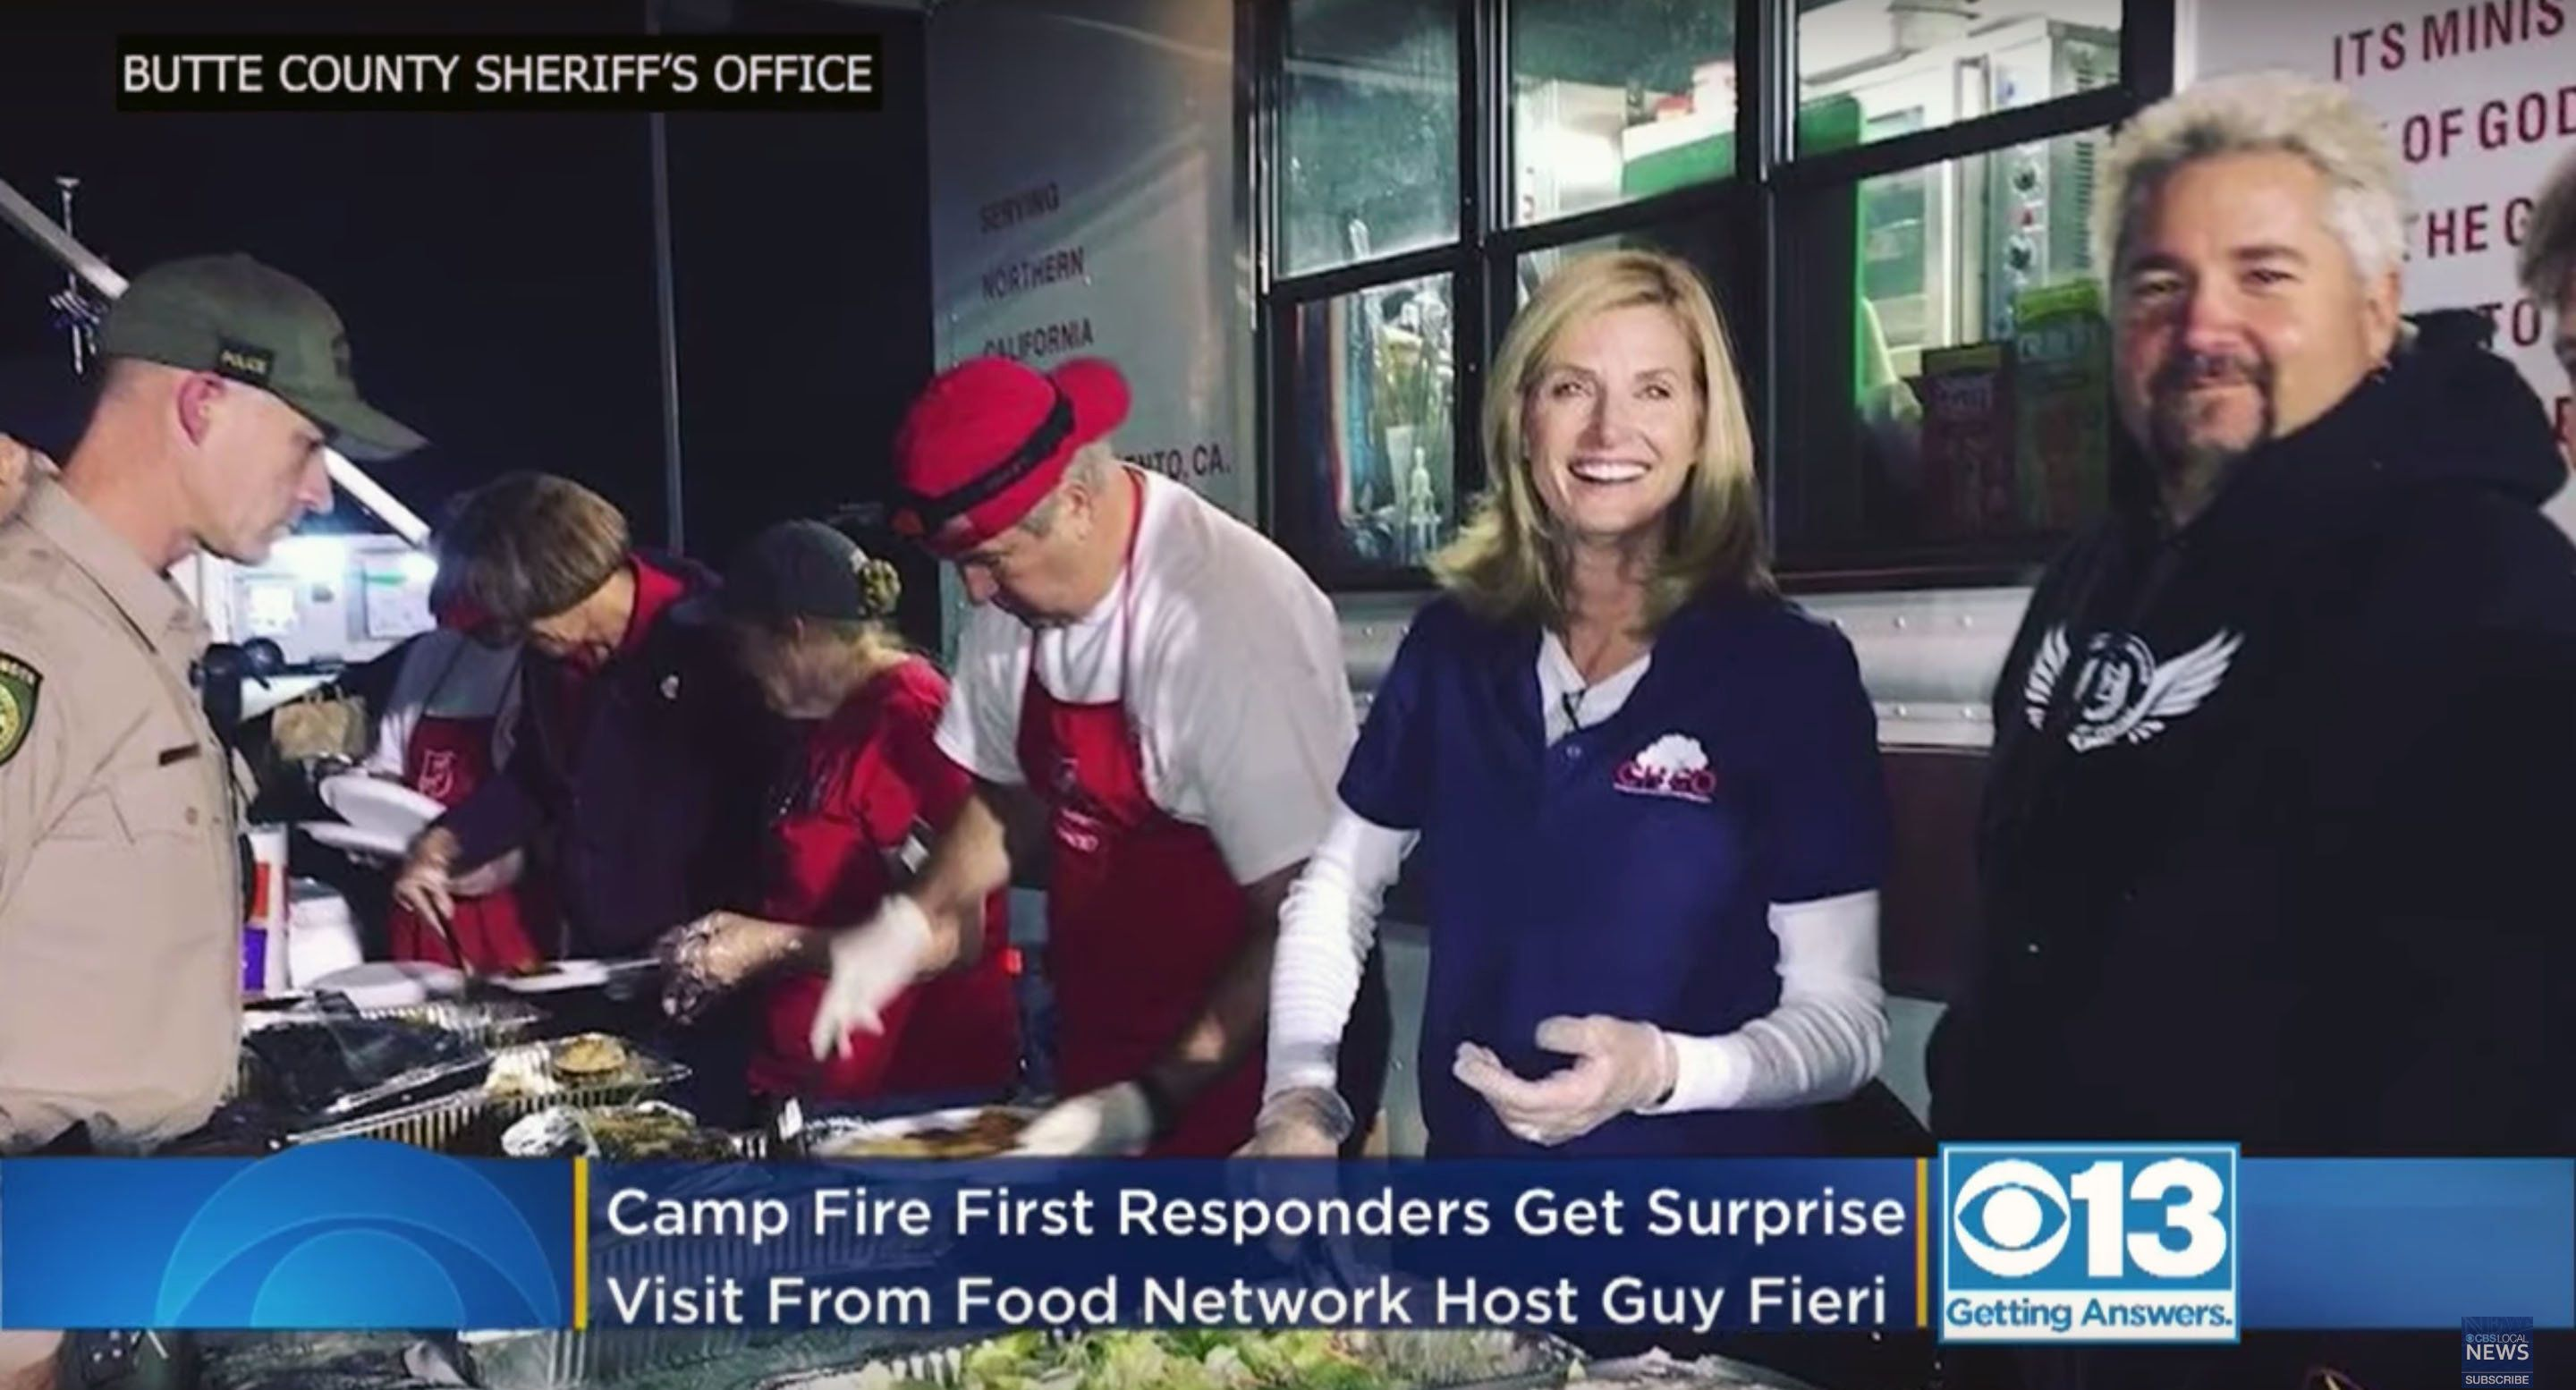 Food Network host Guy Fieri provides food for first responders to the California wildfires.